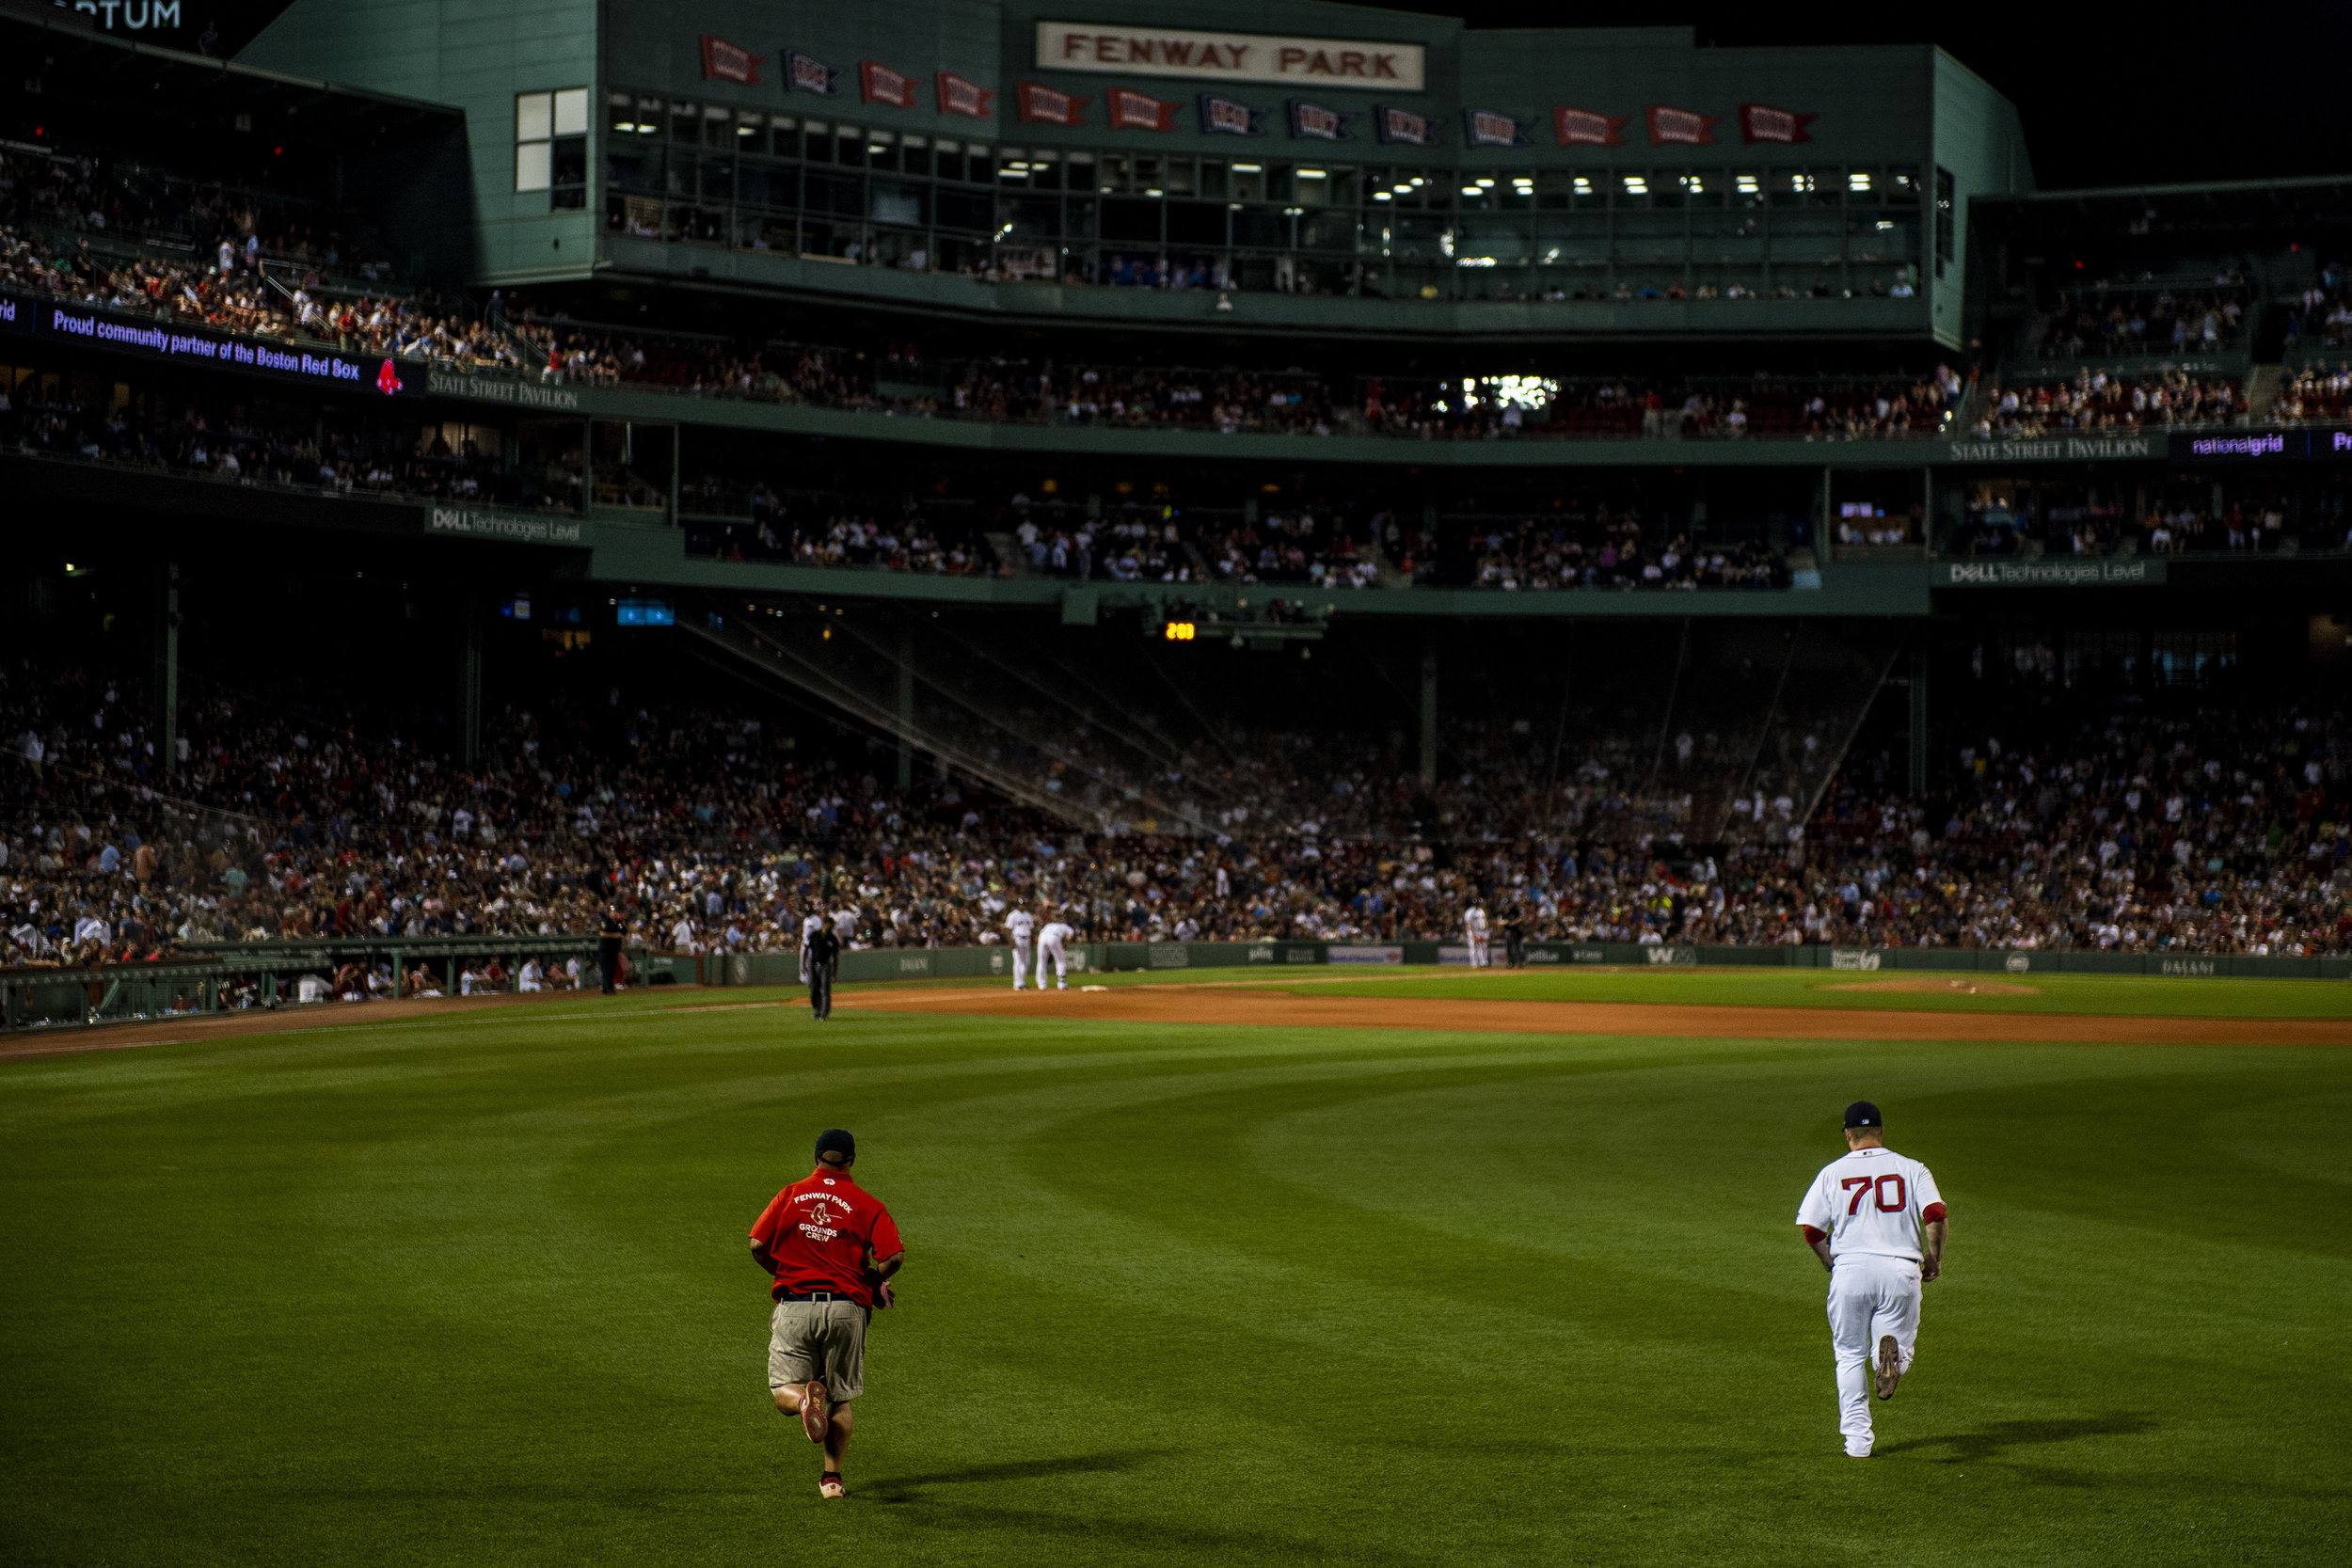 July 8, 2018, Boston, MA: Boston Red Sox pitcher Ryan Brasier enters the game from the bullpen as the Boston Red Sox face the Texas Rangers Fenway Park in Boston, Massachusetts on Monday, July 9, 2018. (Photo by Matthew Thomas/Boston Red Sox)